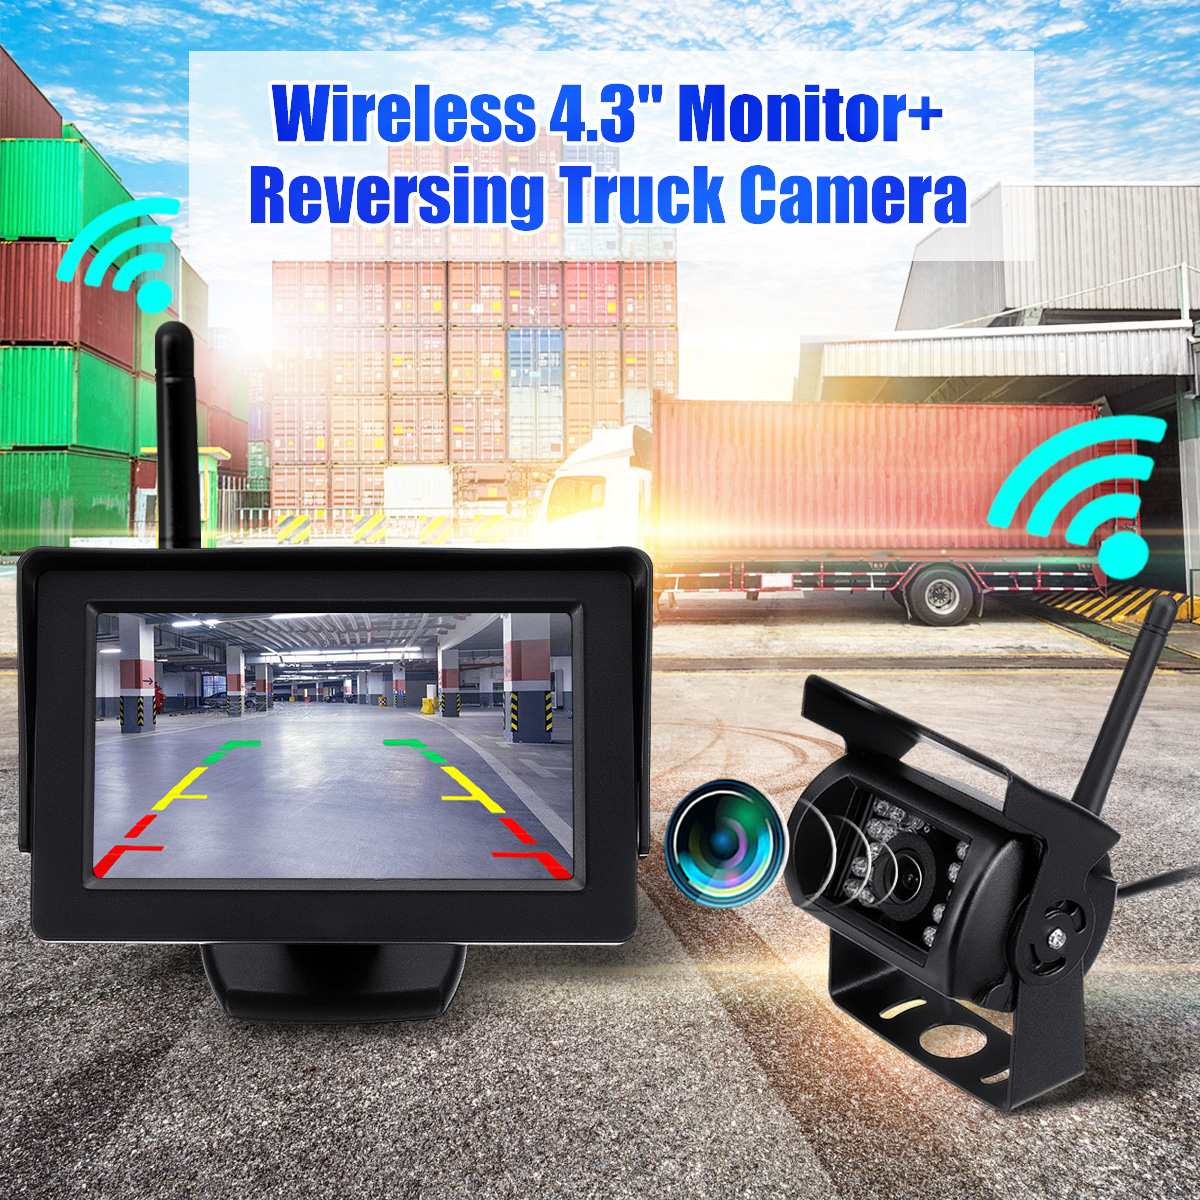 4.3 Inch LCD Monitor 2.4G Wireless Car Rear View Camera Truck Back up Camera Monitor For Truck Bus Parking Rear View System image